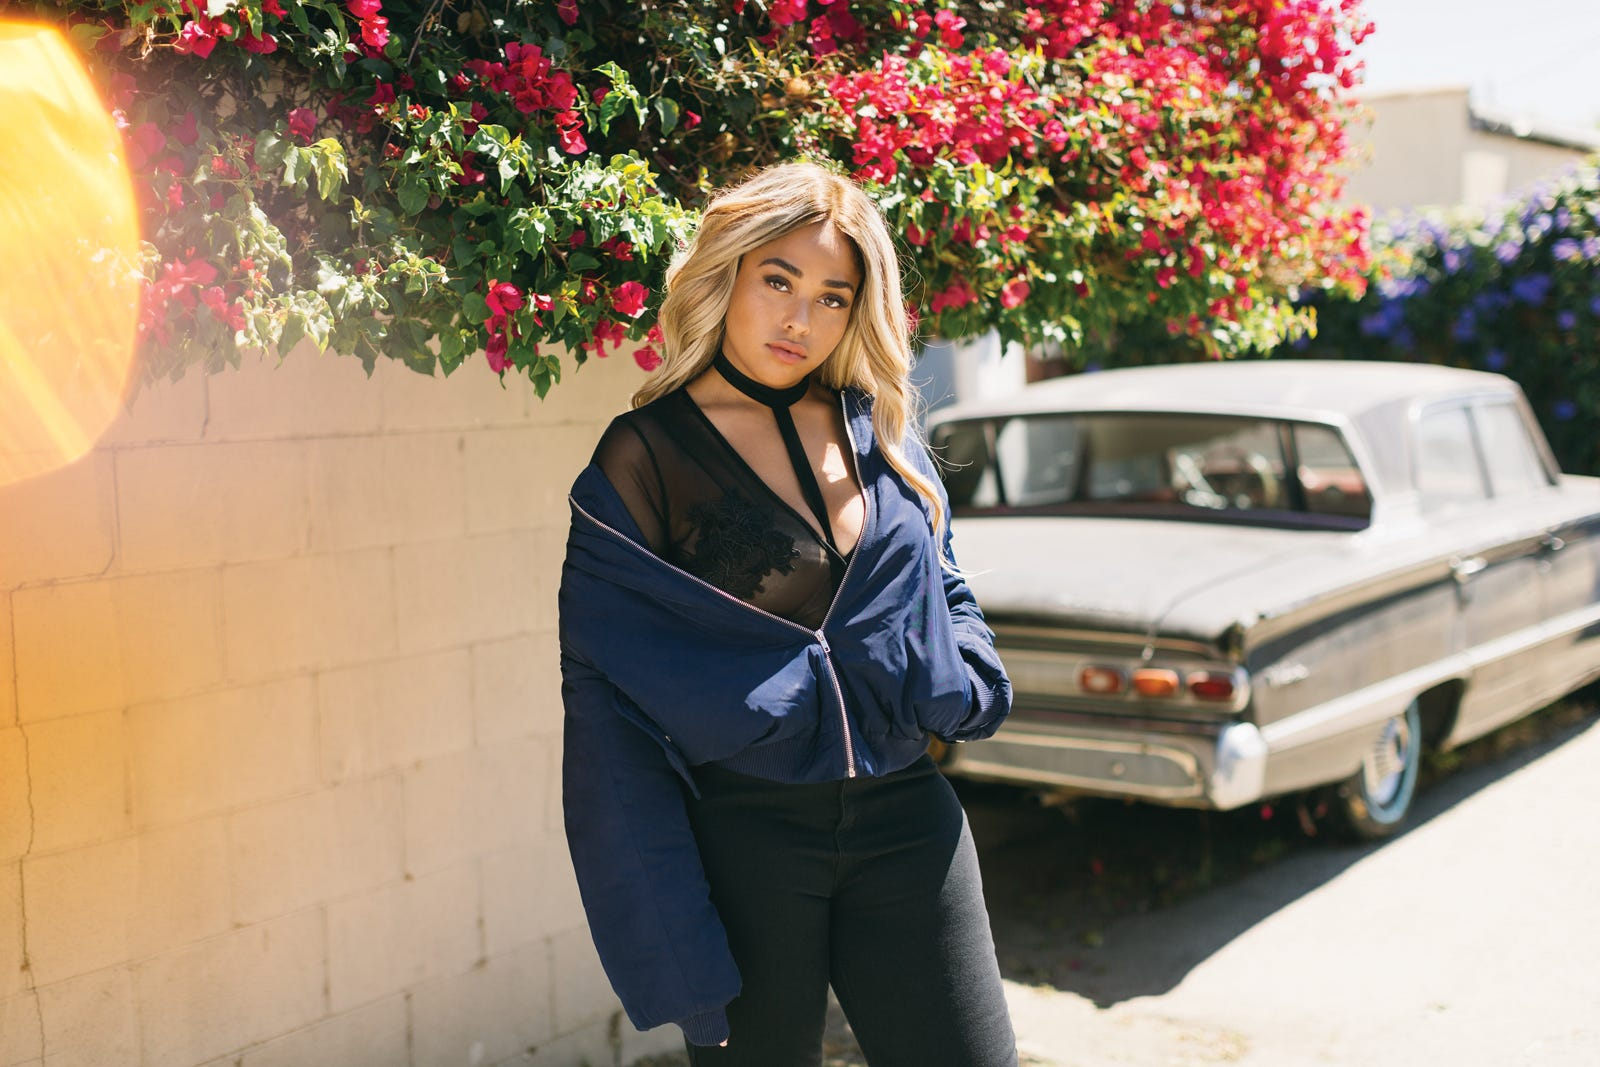 50629018c0d5 Jordyn Woods Boohoo New Clothing Collection Photos